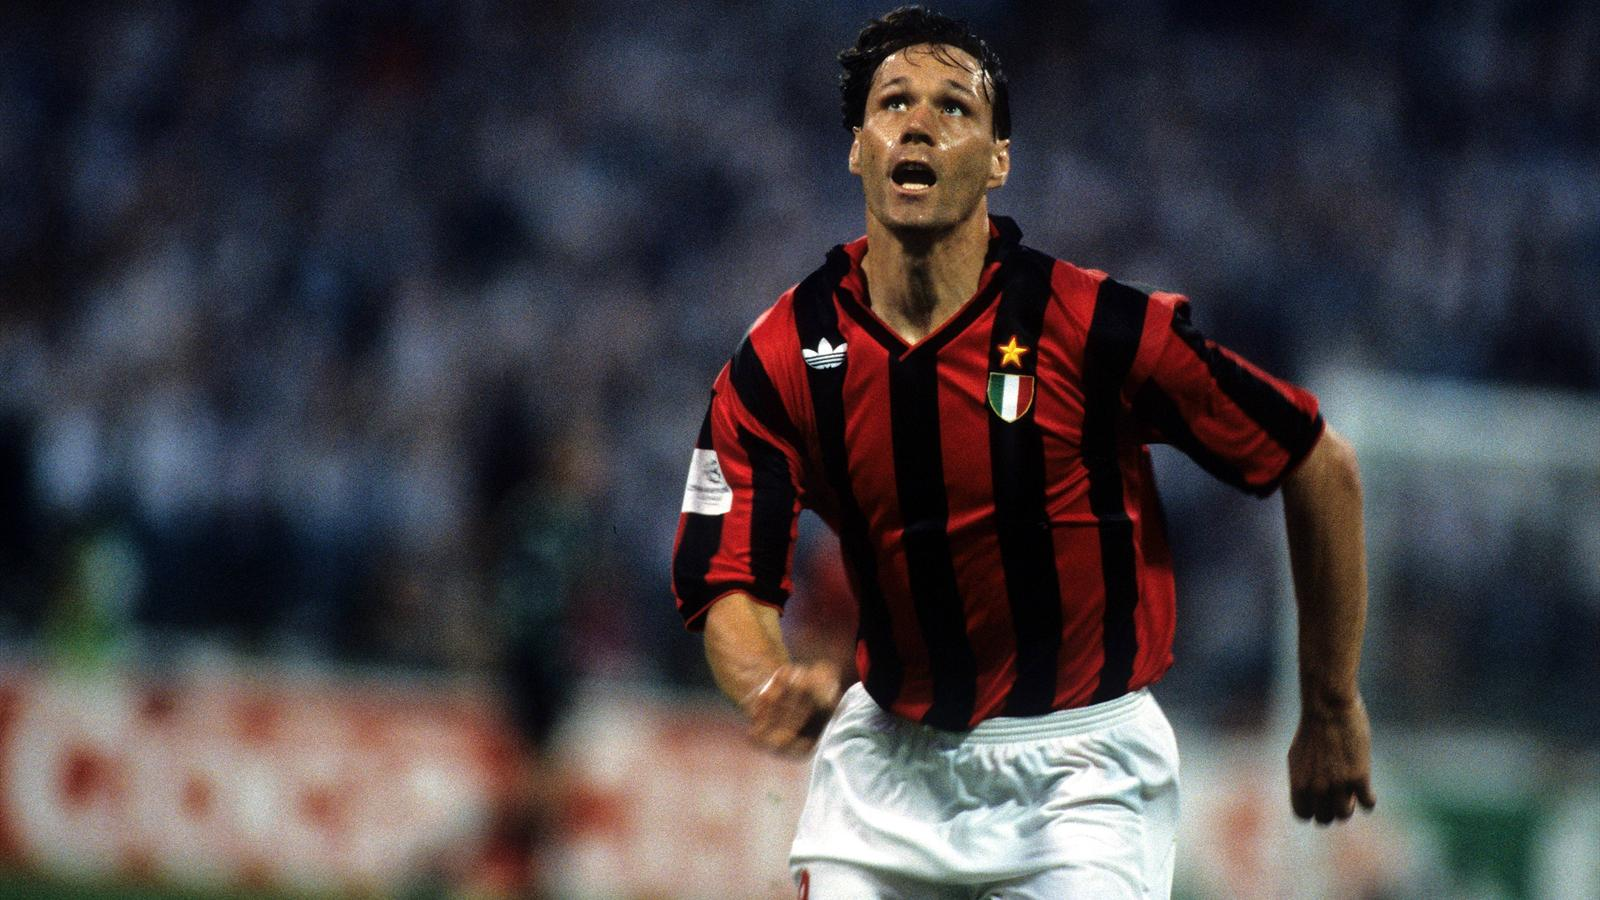 Soccer football or whatever AC Milan All time team